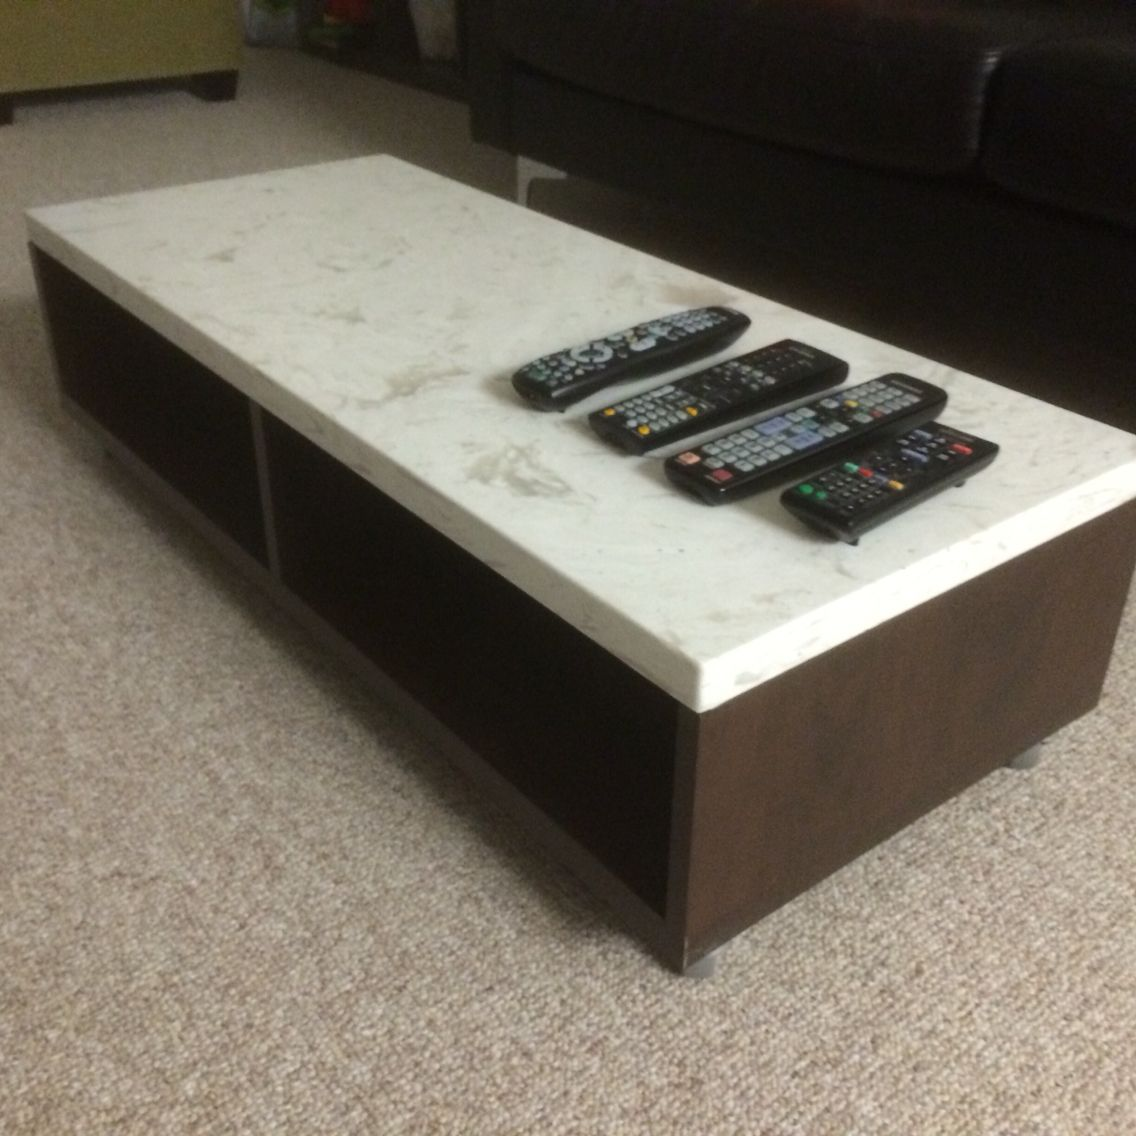 Custom built apartment size Granite coffee table with wood finished and wheels for rolling around for easy cleaning.